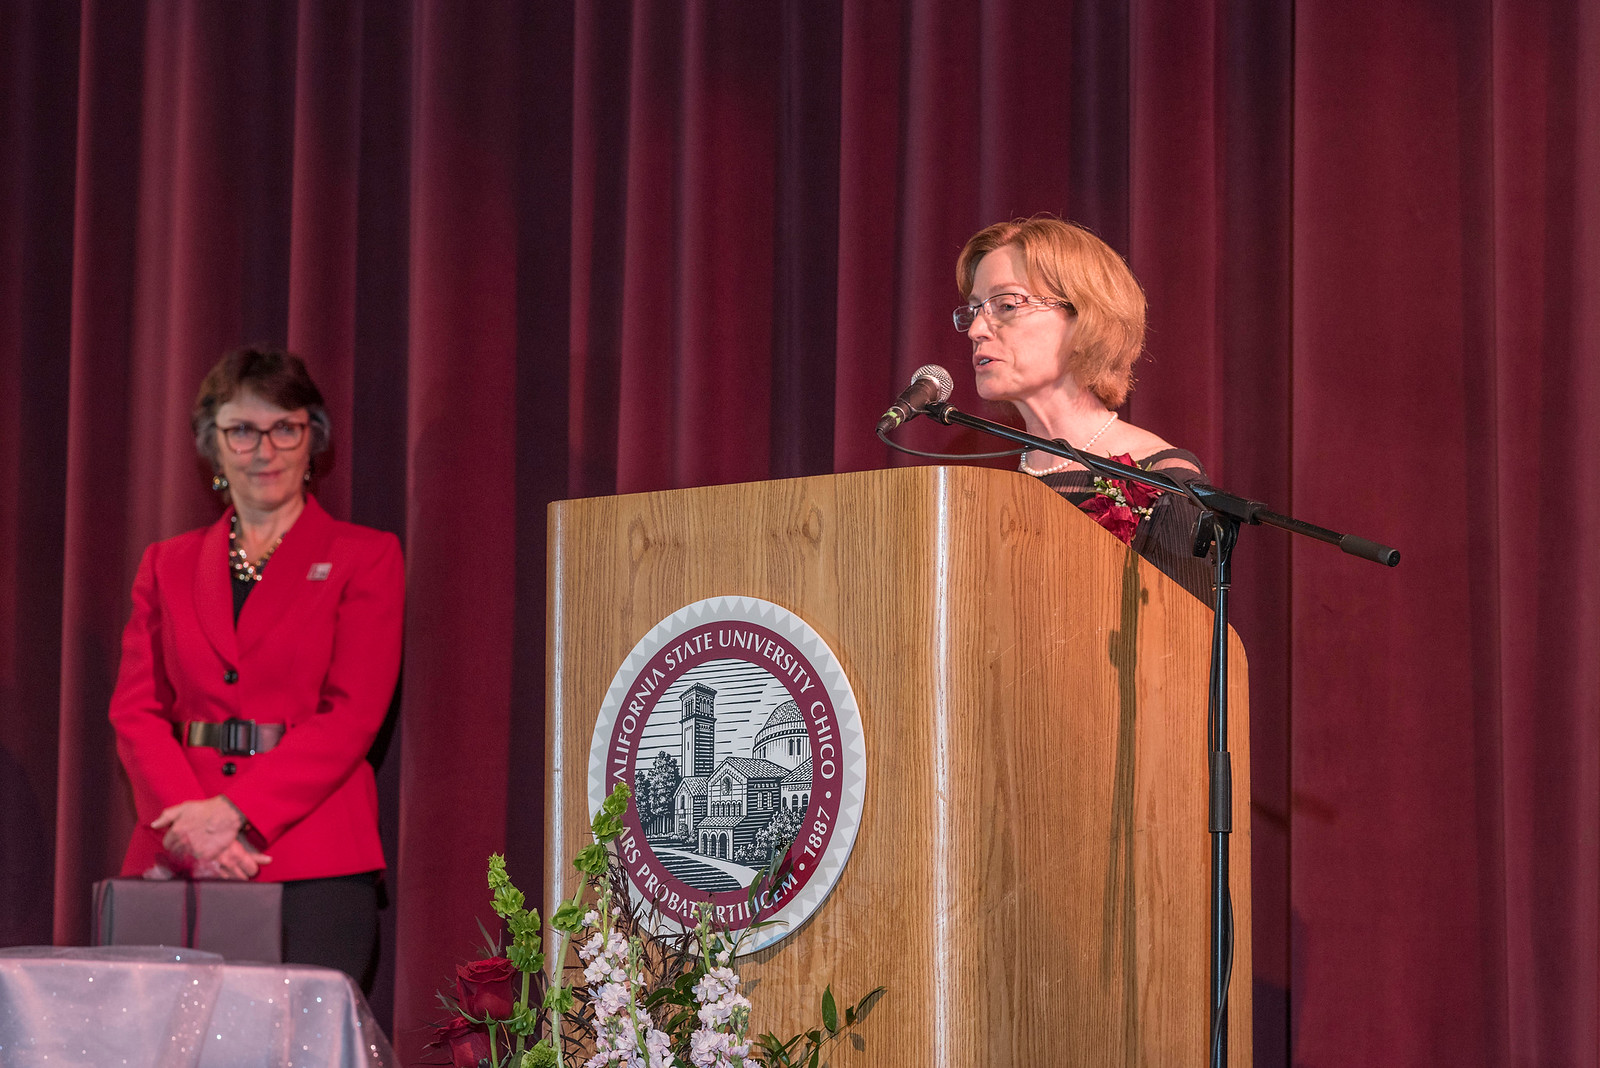 President Gayle Hutchinson (left) listens to Distinguished Alumni Jenelle Ball (right) talk to guests and honorees during the Distinguished Alumni Dinner on Friday, March 24, 2017 in Chico, Calif. (Jason Halley/University Photographer)